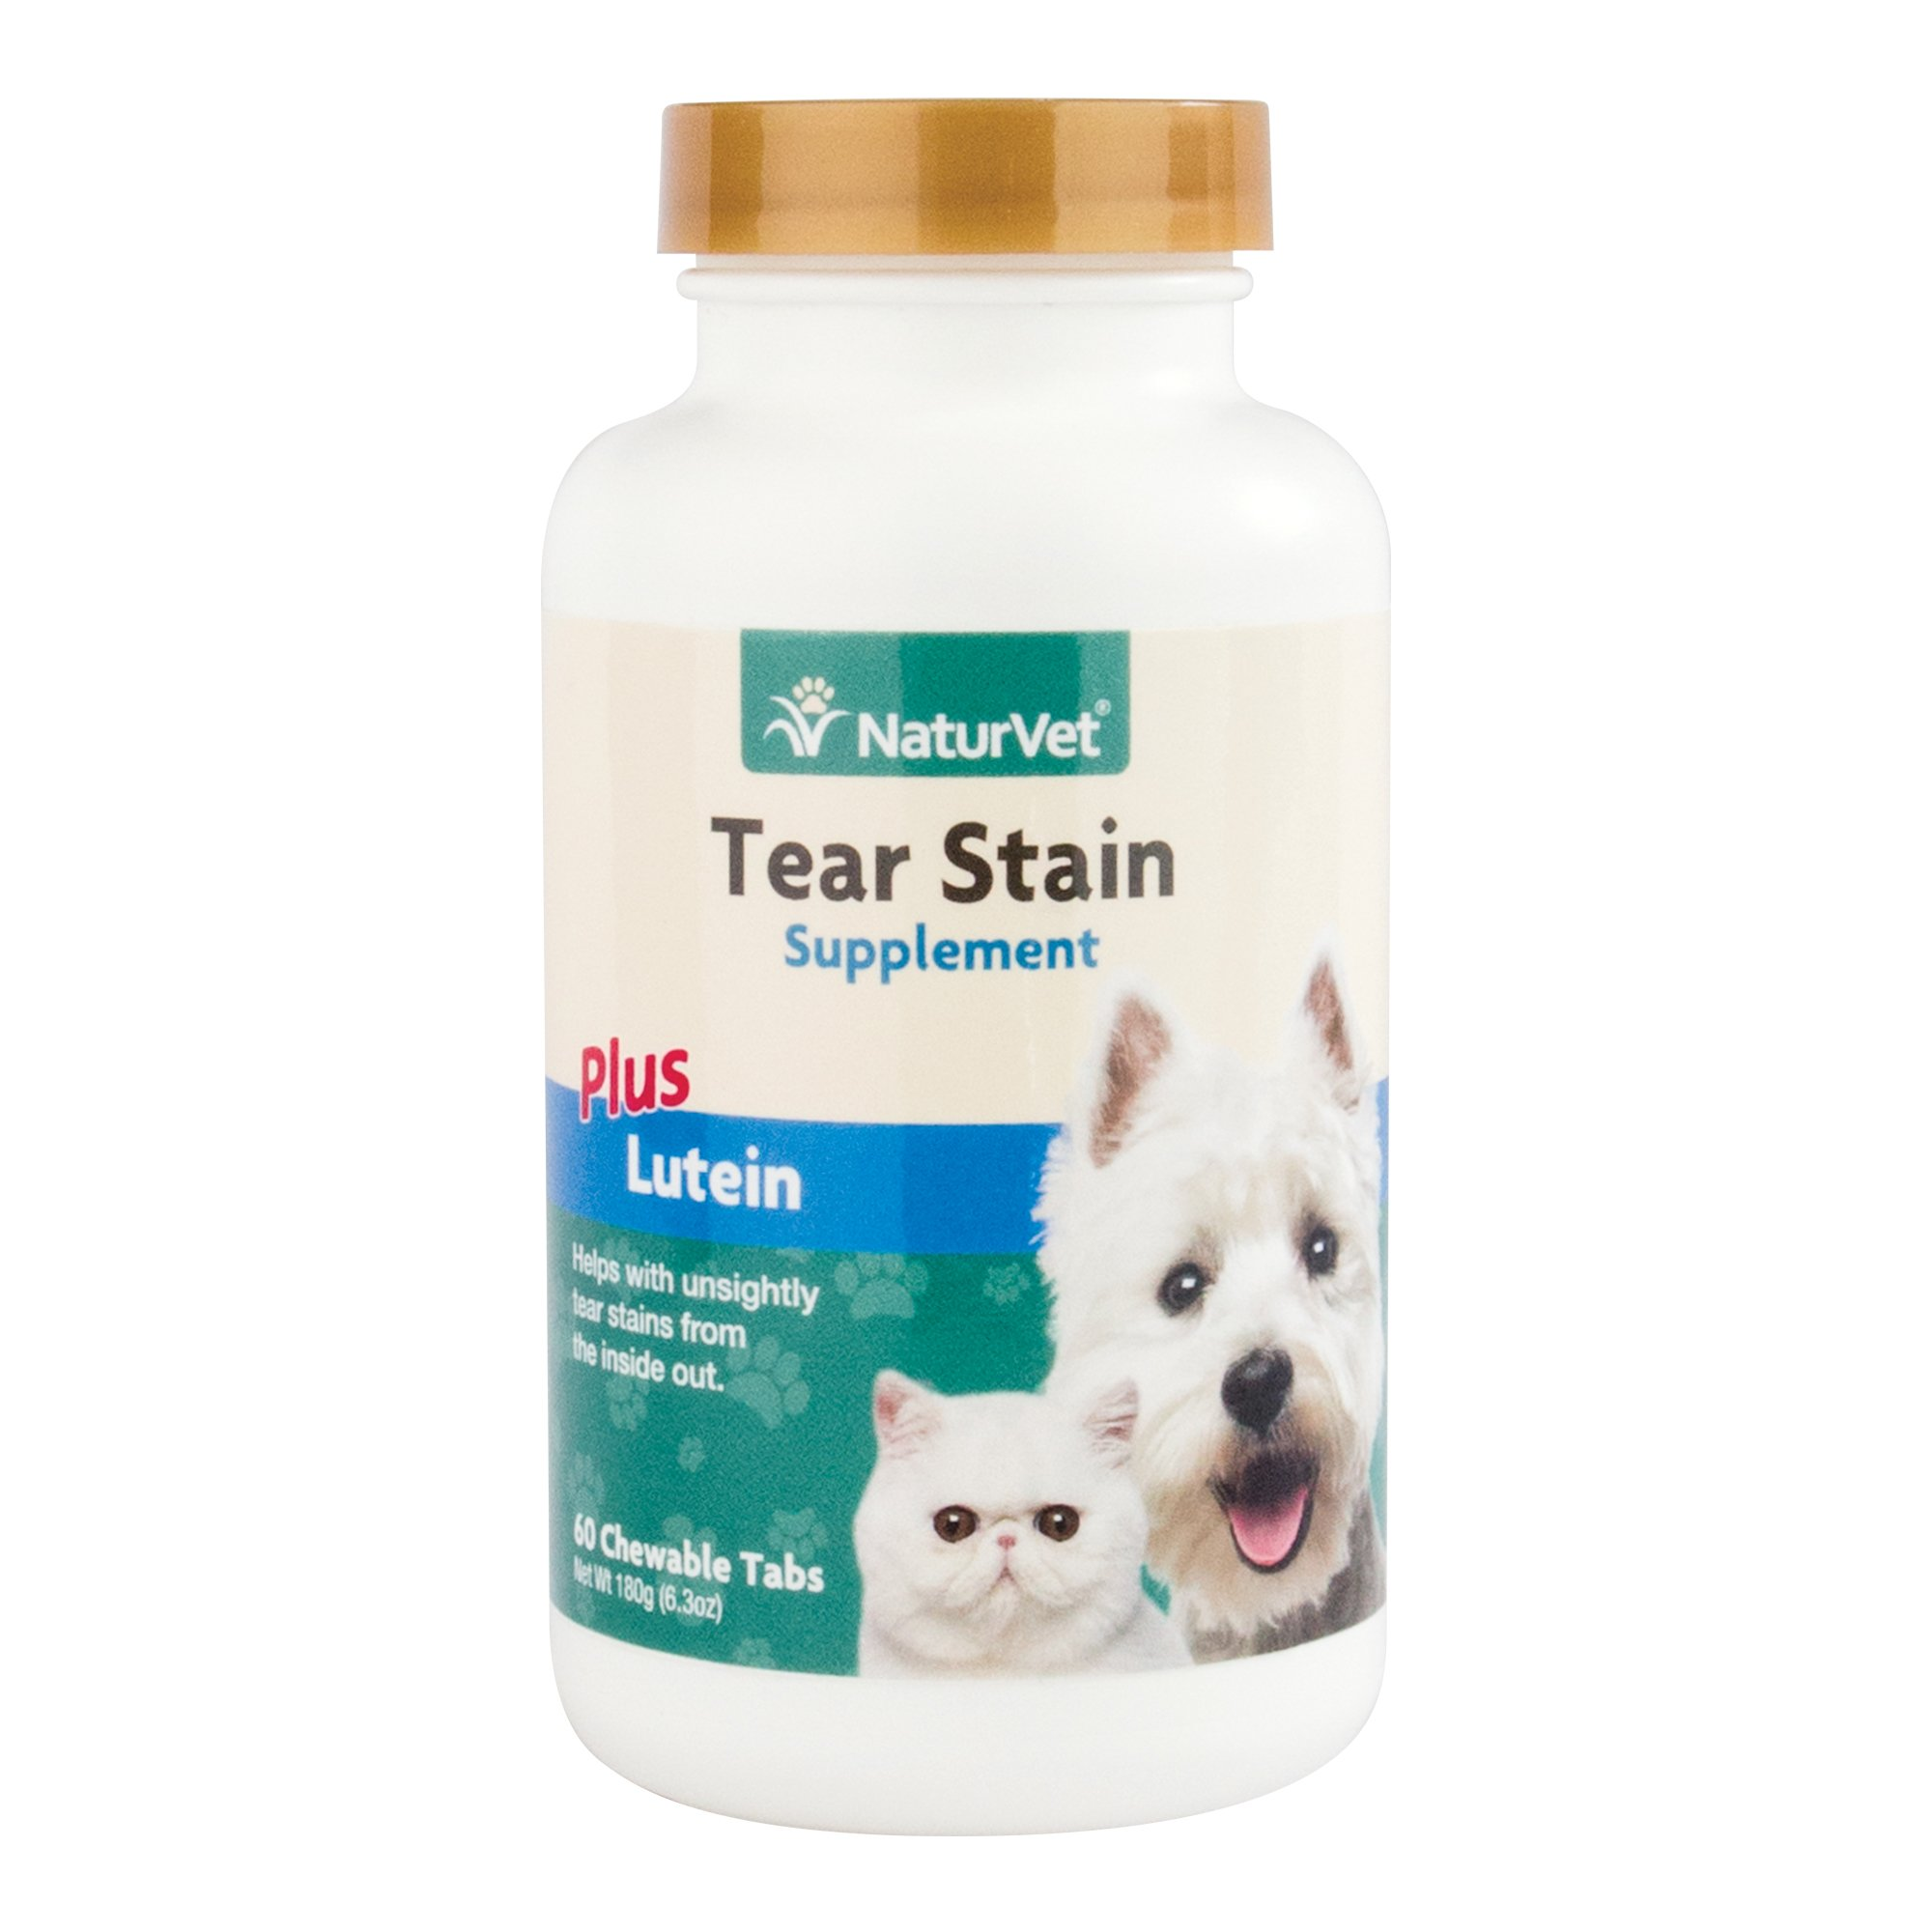 NaturVet Tear Stain Supplement Plus Lutein for Dogs and Cats, 60 ct Chewable Tablets, Made in USA